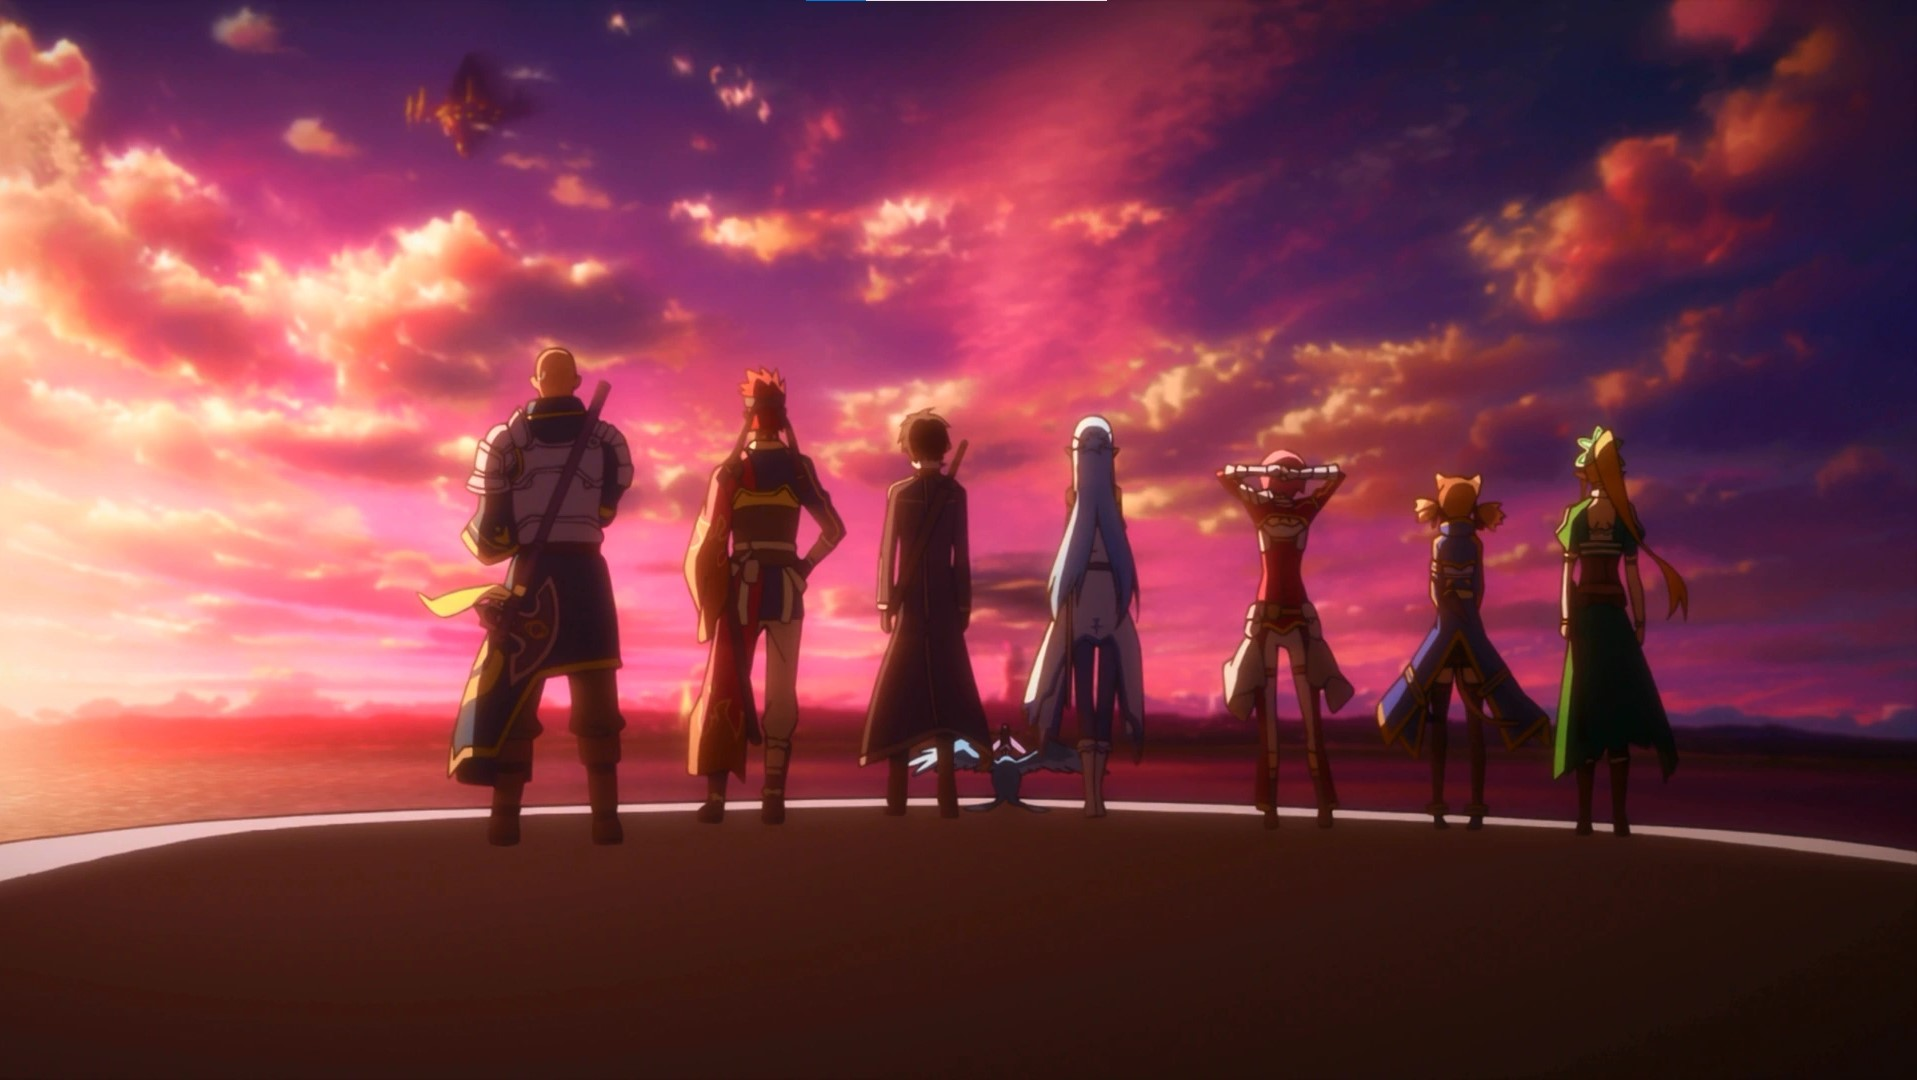 Sword Art Online: Extra Edition- sword art online watch order guide